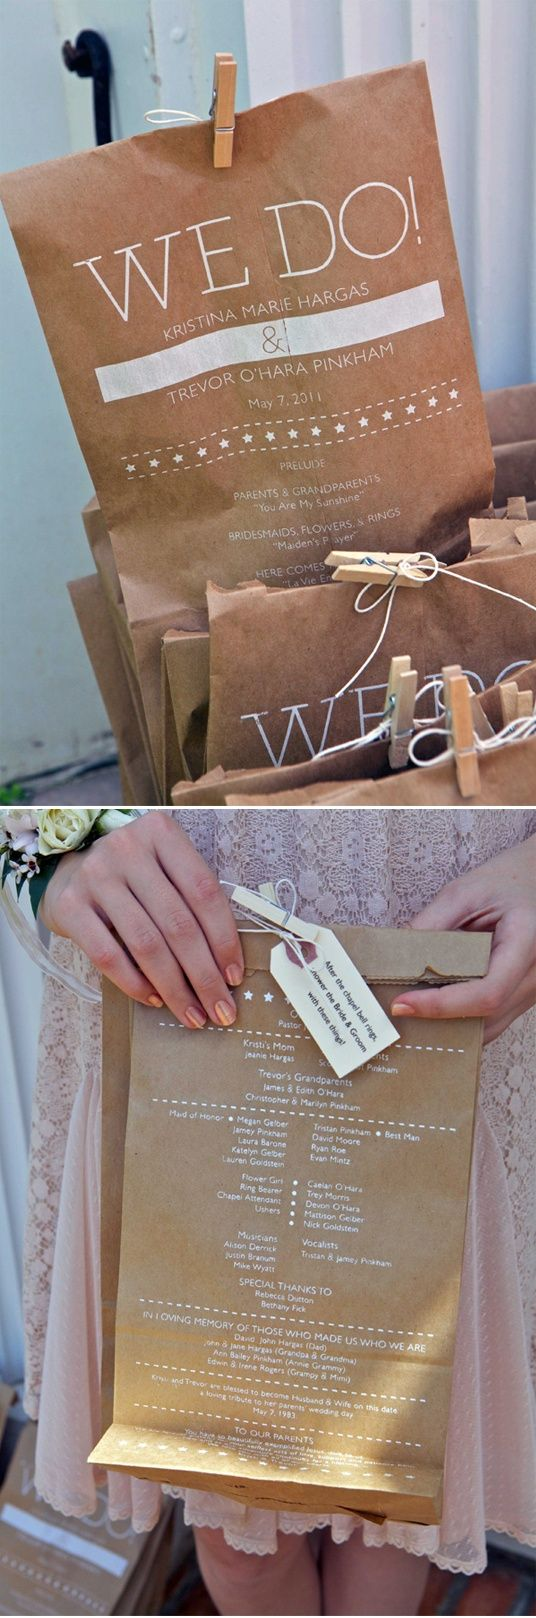 Wedding program printed on brown bags filled with confetti to toss at the married couple